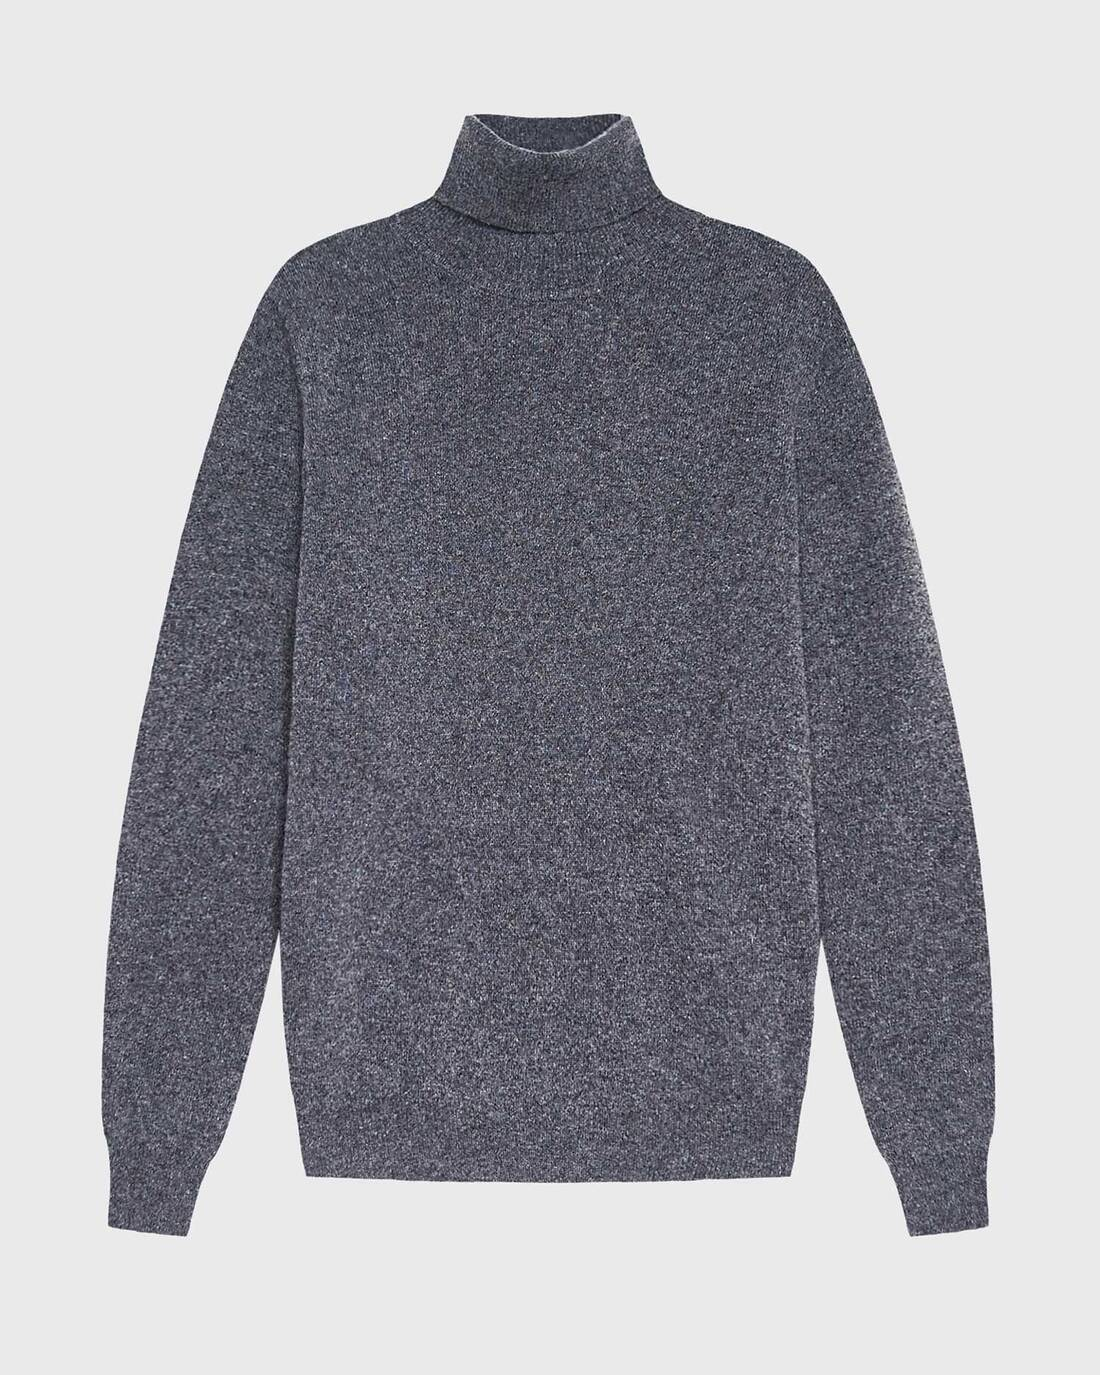 Cashmere wool sweater